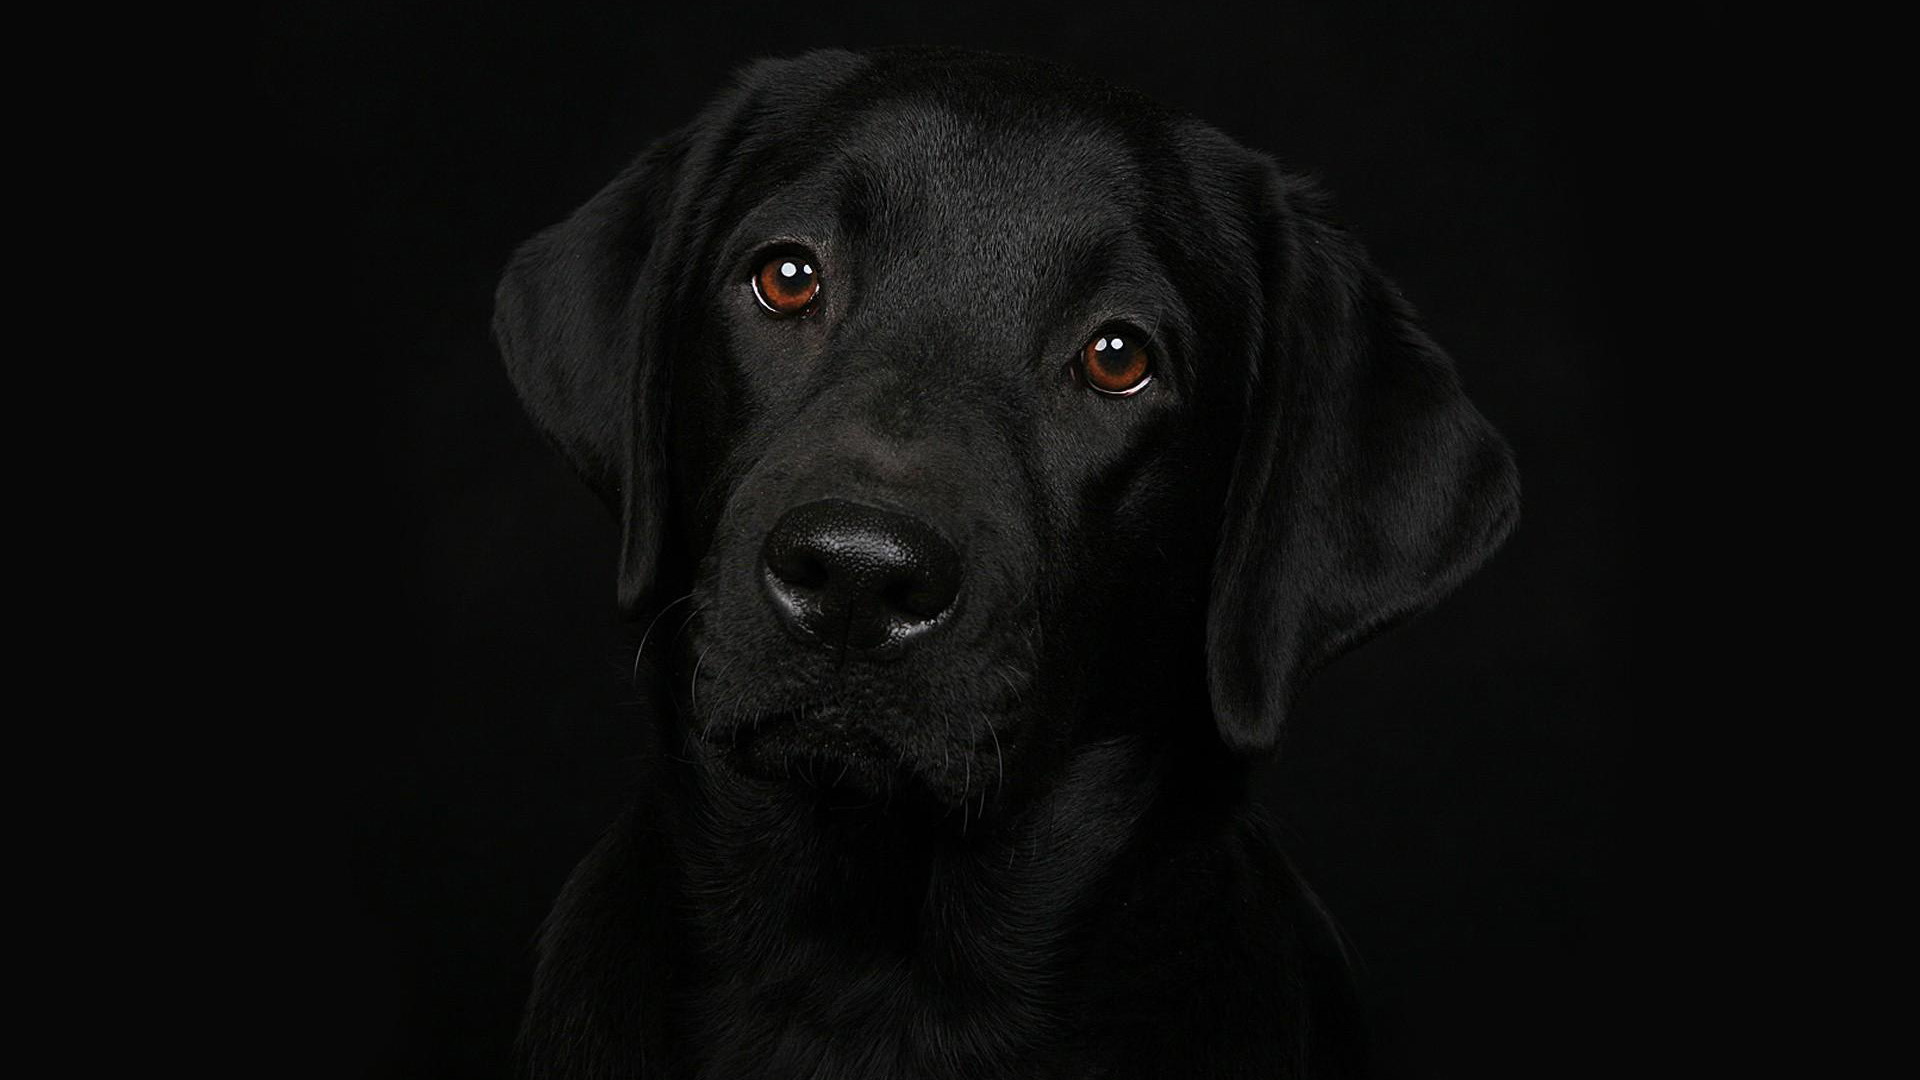 Black Dog Image » Earthly Wallpaper 1080p